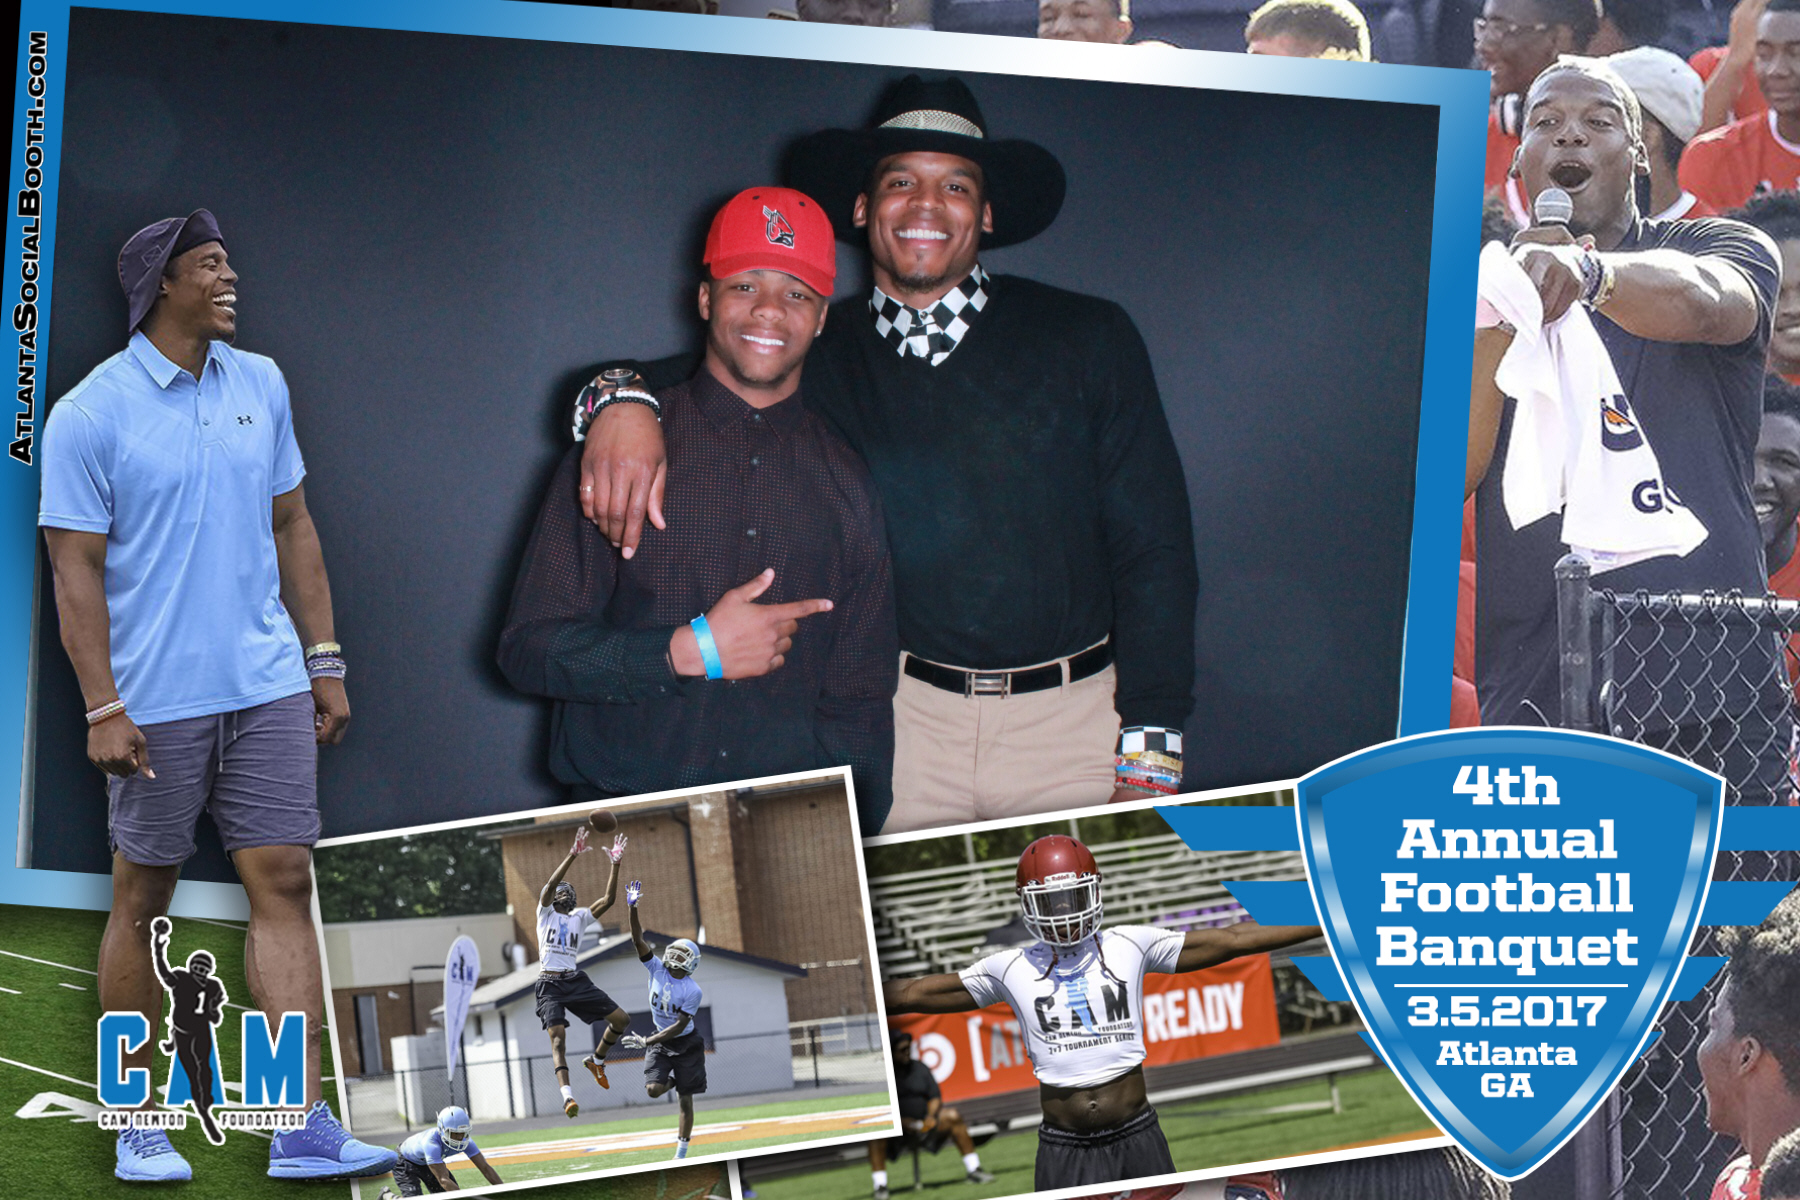 Cam Newton Football Banquet 2017